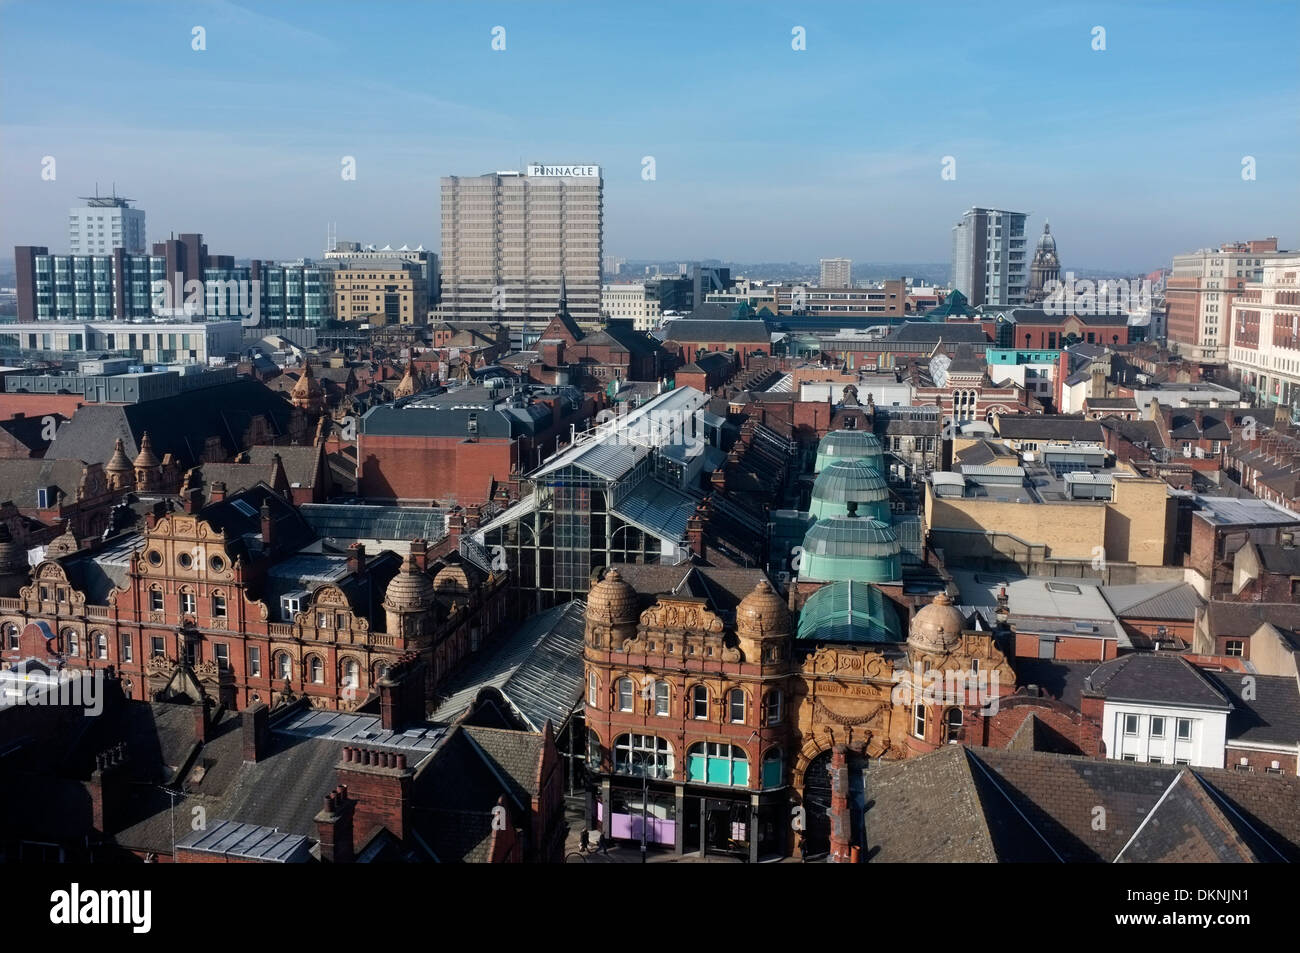 Panoramic view of Leeds City Centre, showing the Victorian Quarter. - Stock Image